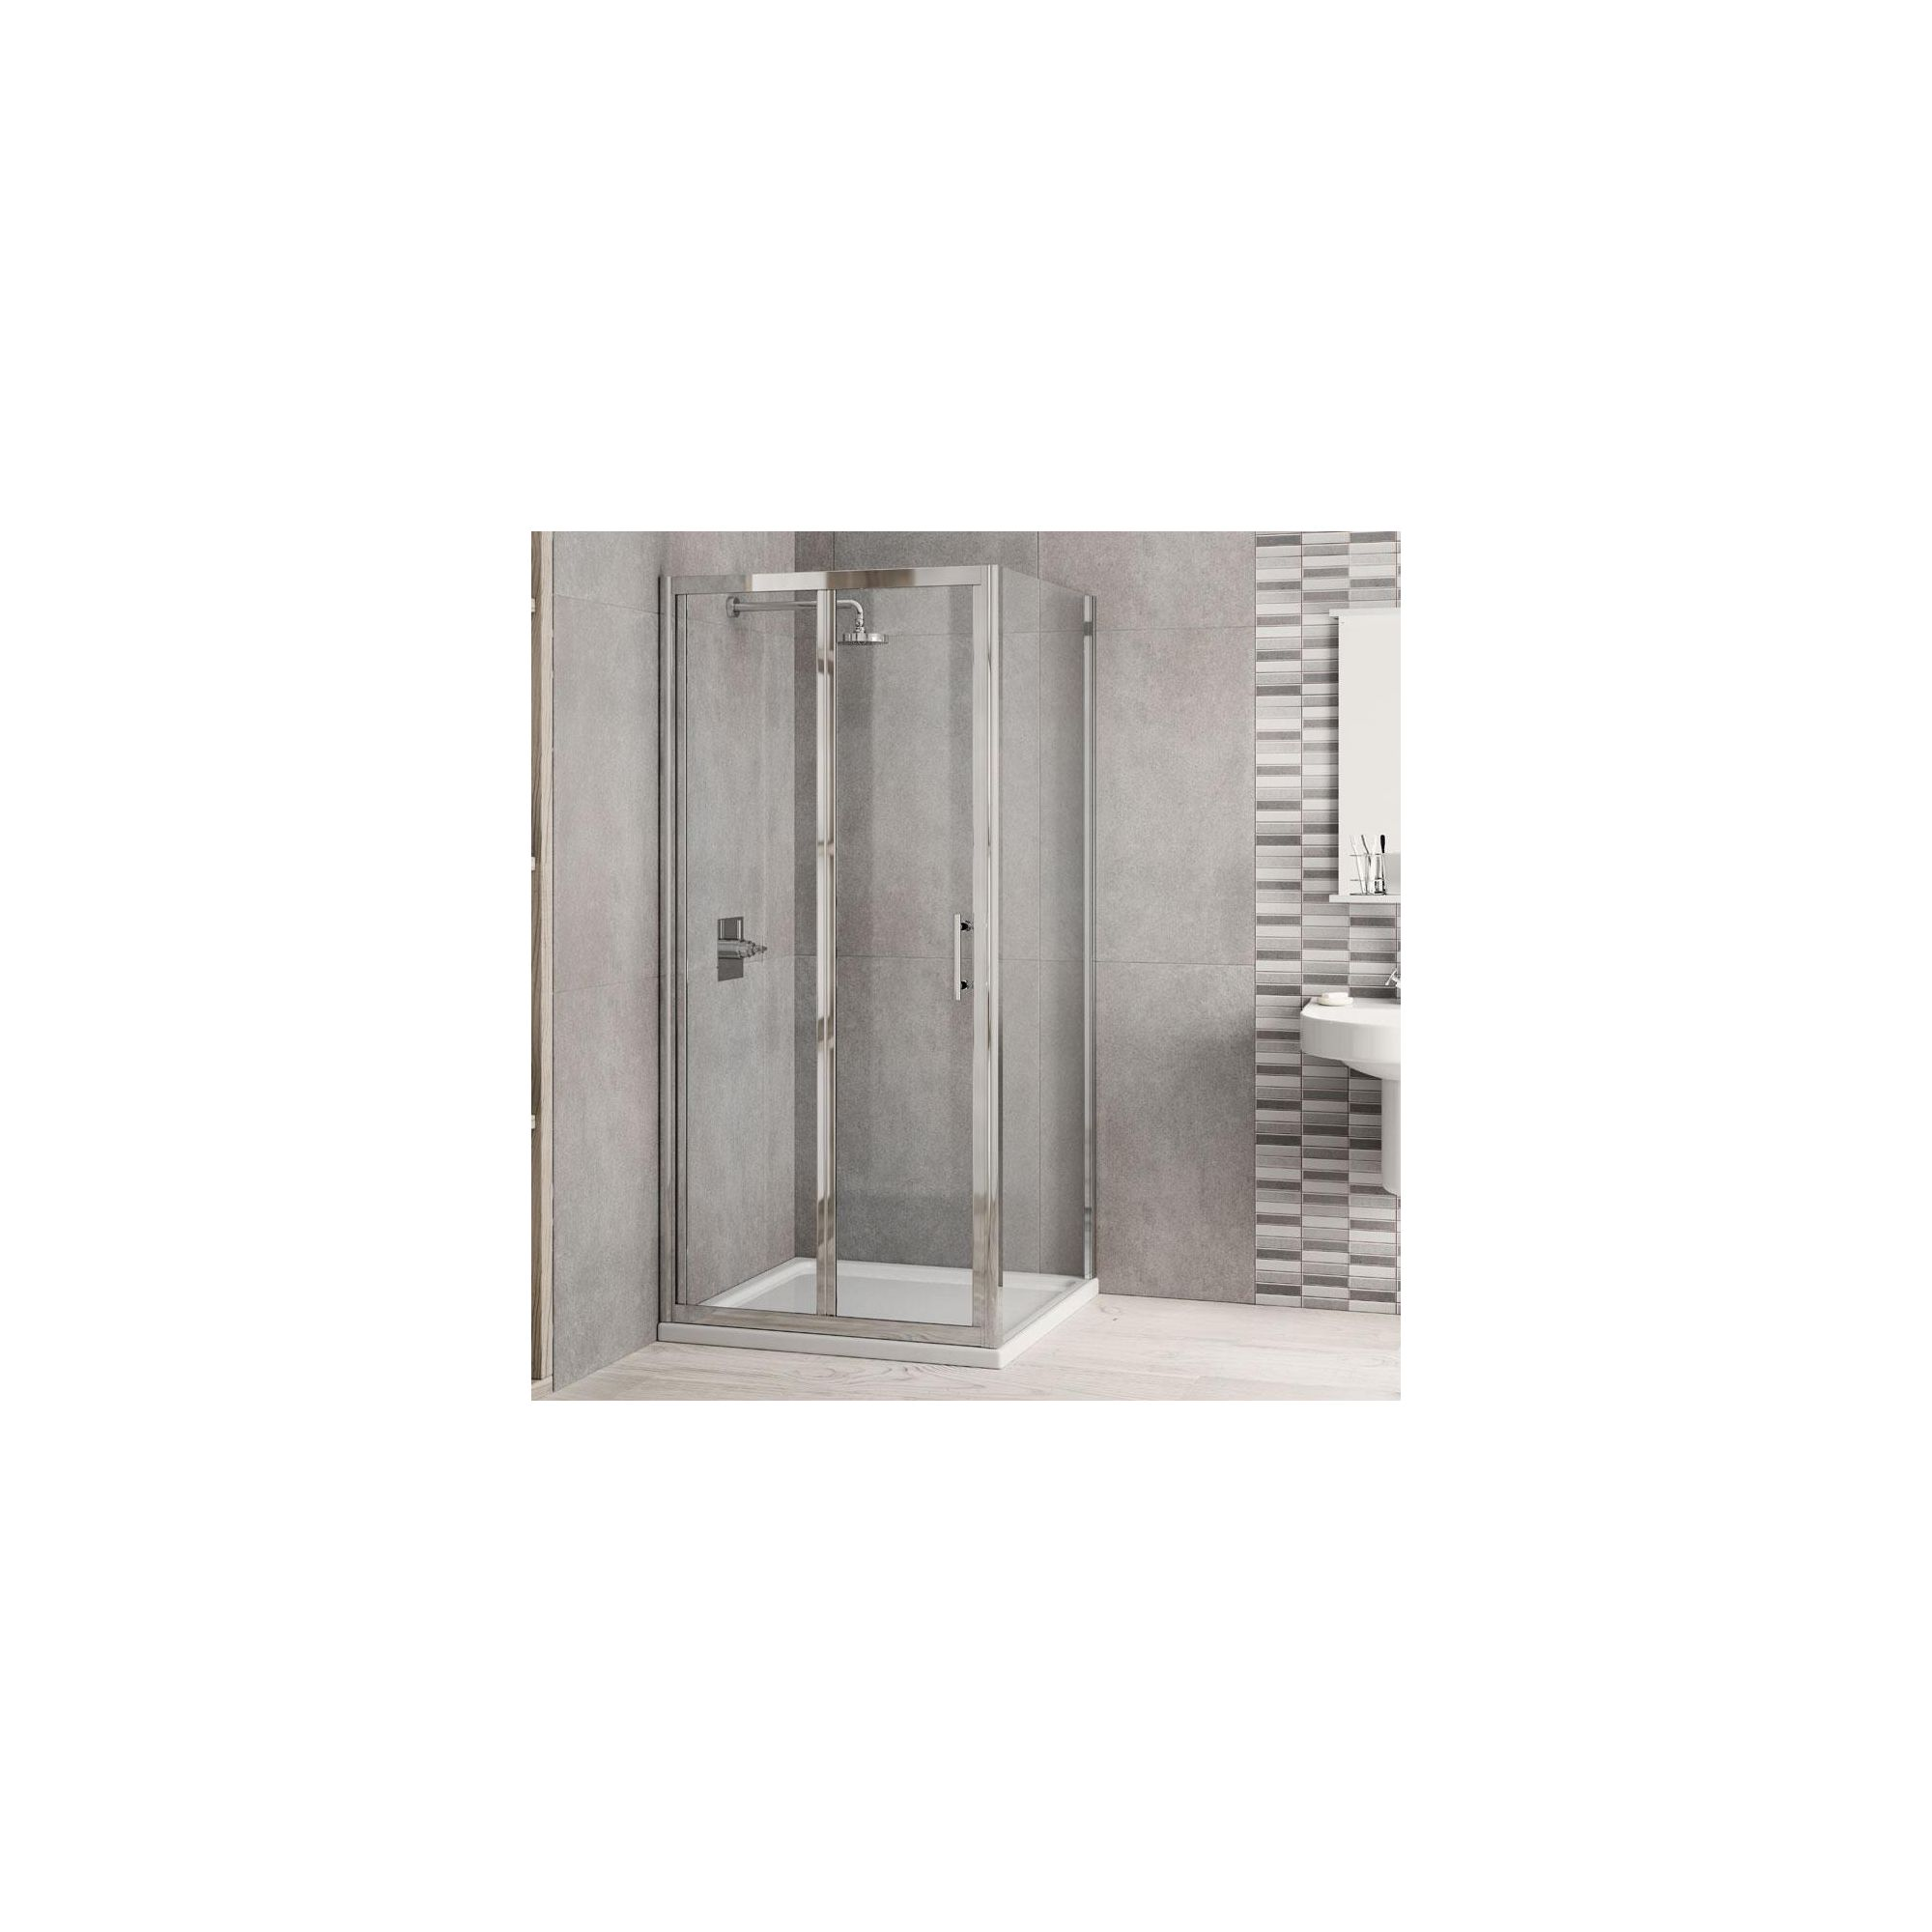 Elemis Inspire Bi-Fold Door Shower Enclosure, 900mm x 900mm, 6mm Glass, Low Profile Tray at Tesco Direct